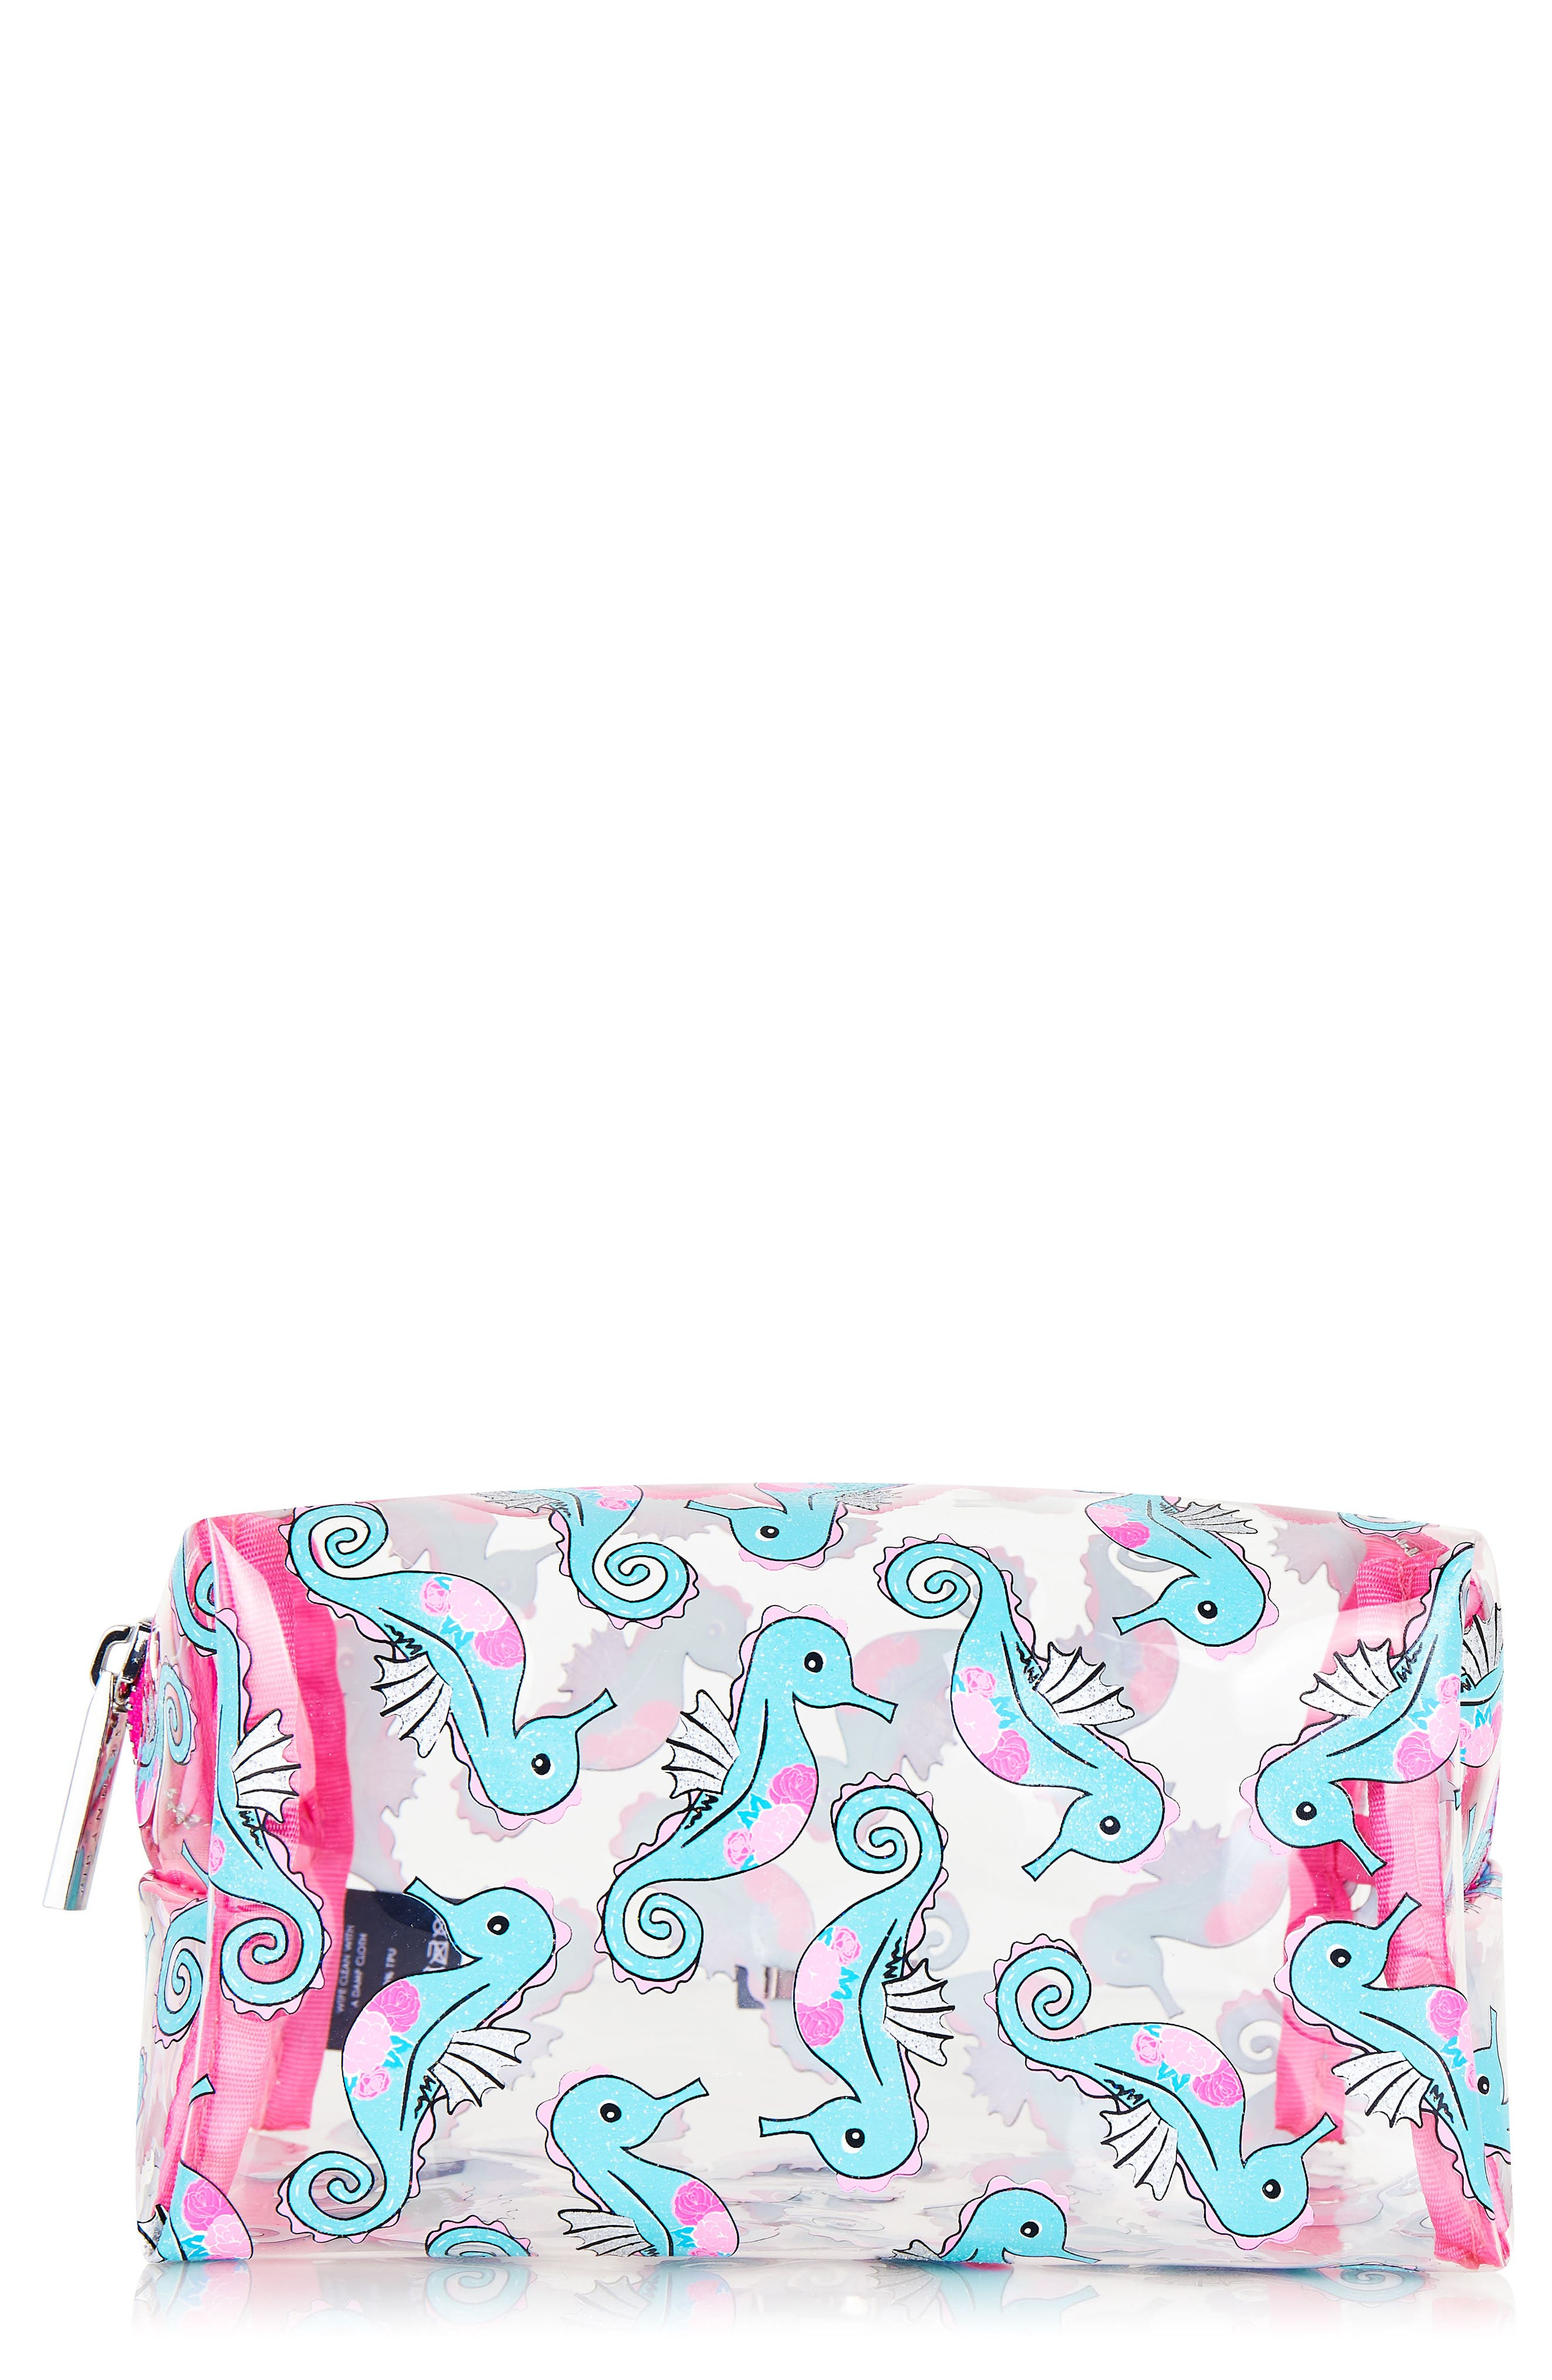 Skinny Dip Reef Makeup Bag